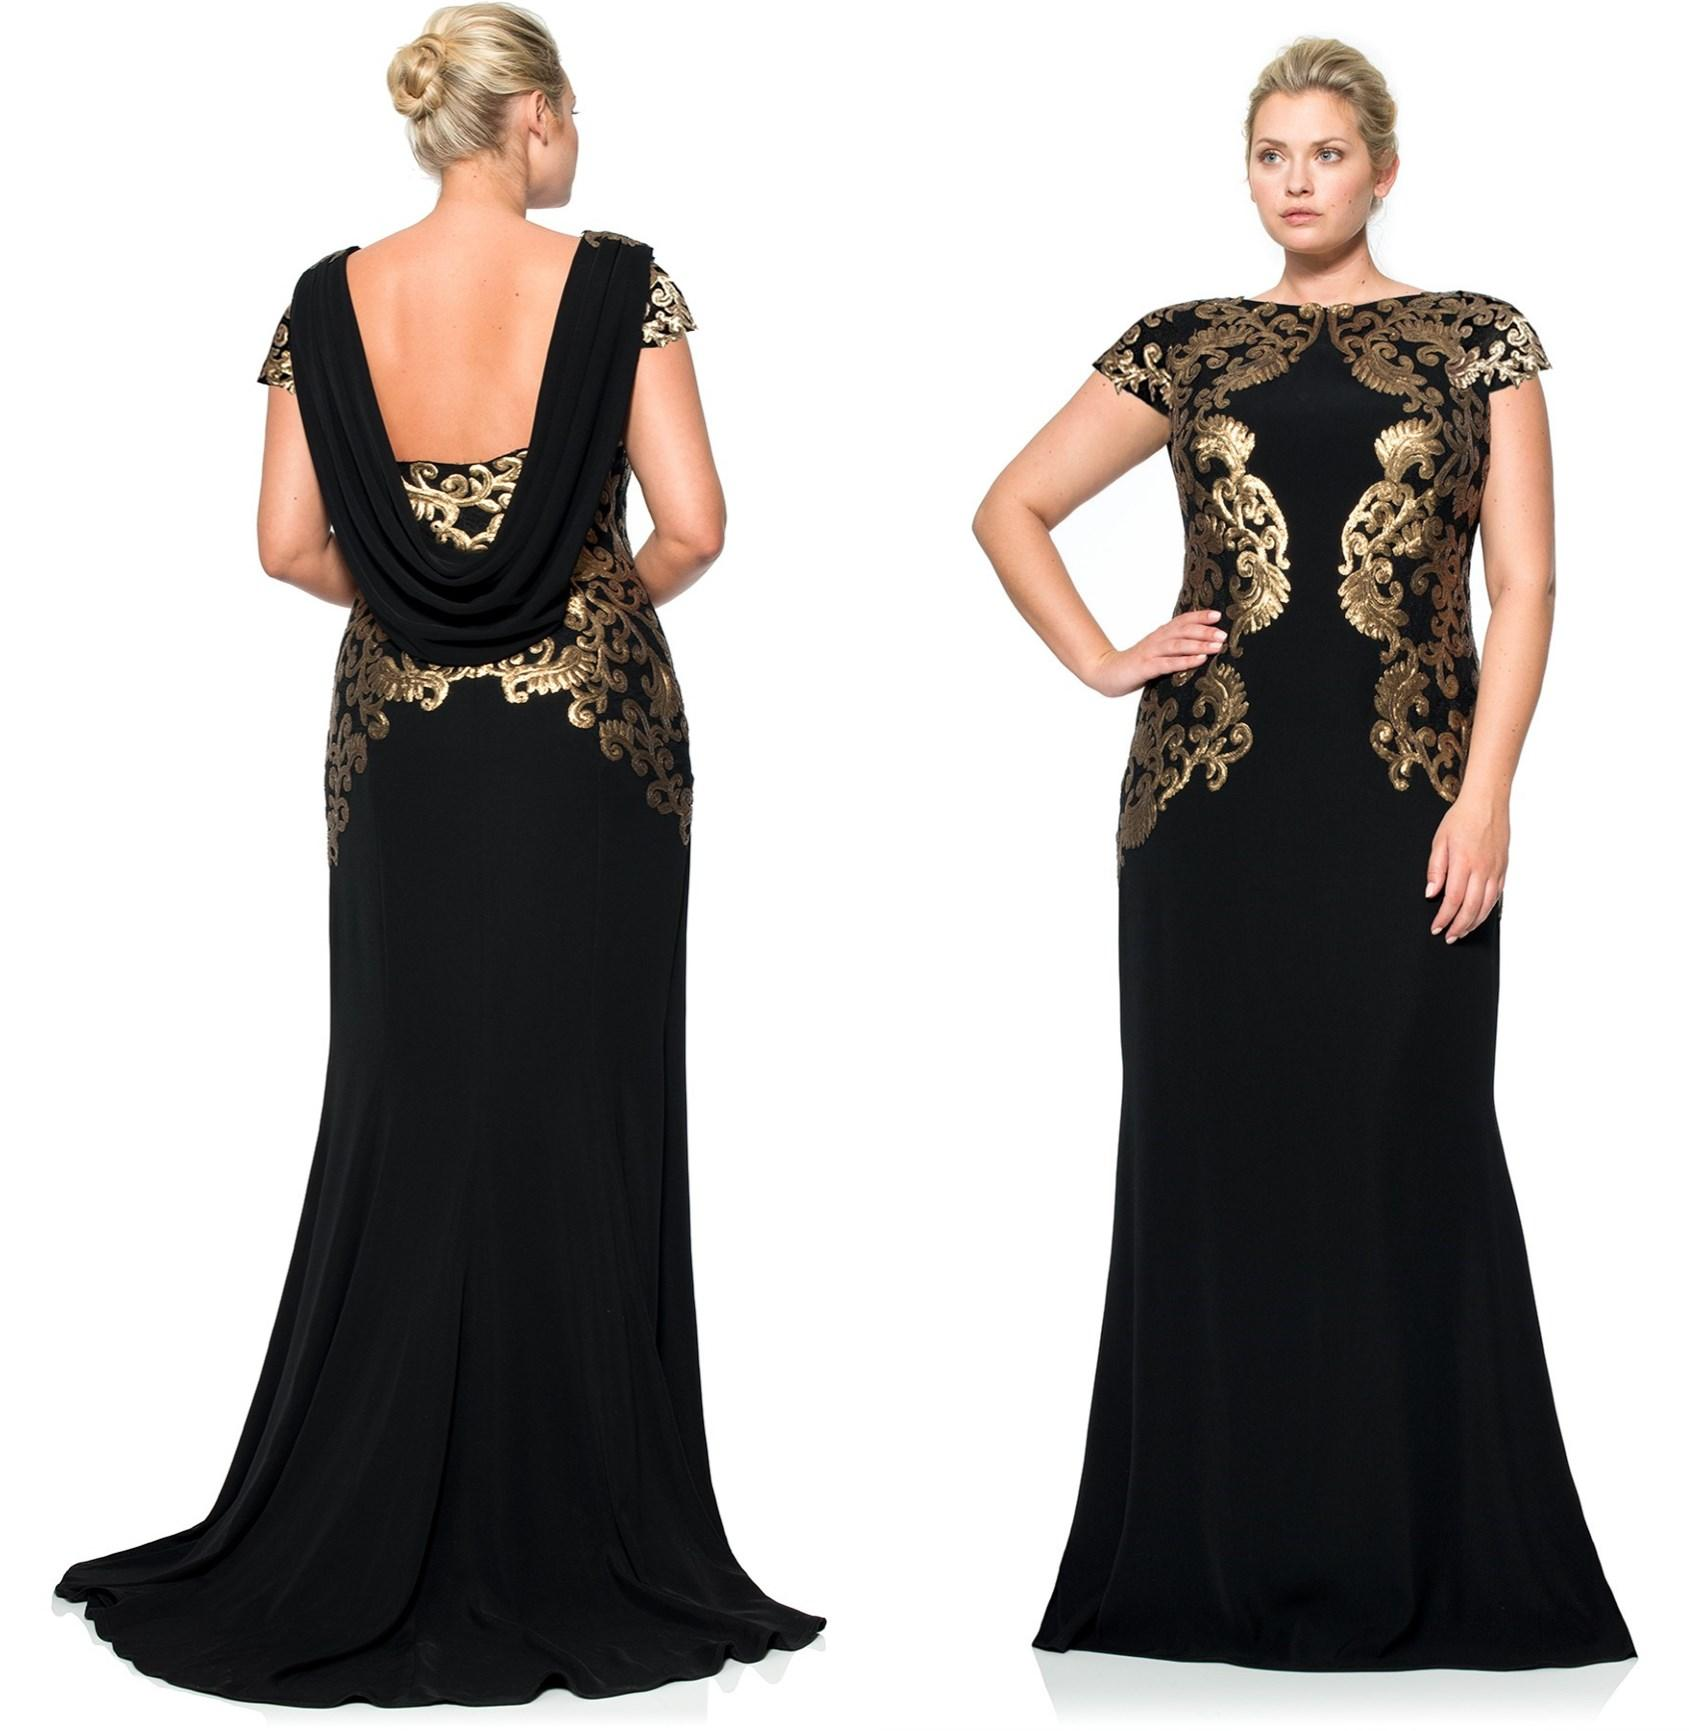 Plus Size Evening Dresses In Black - Boutique Prom Dresses